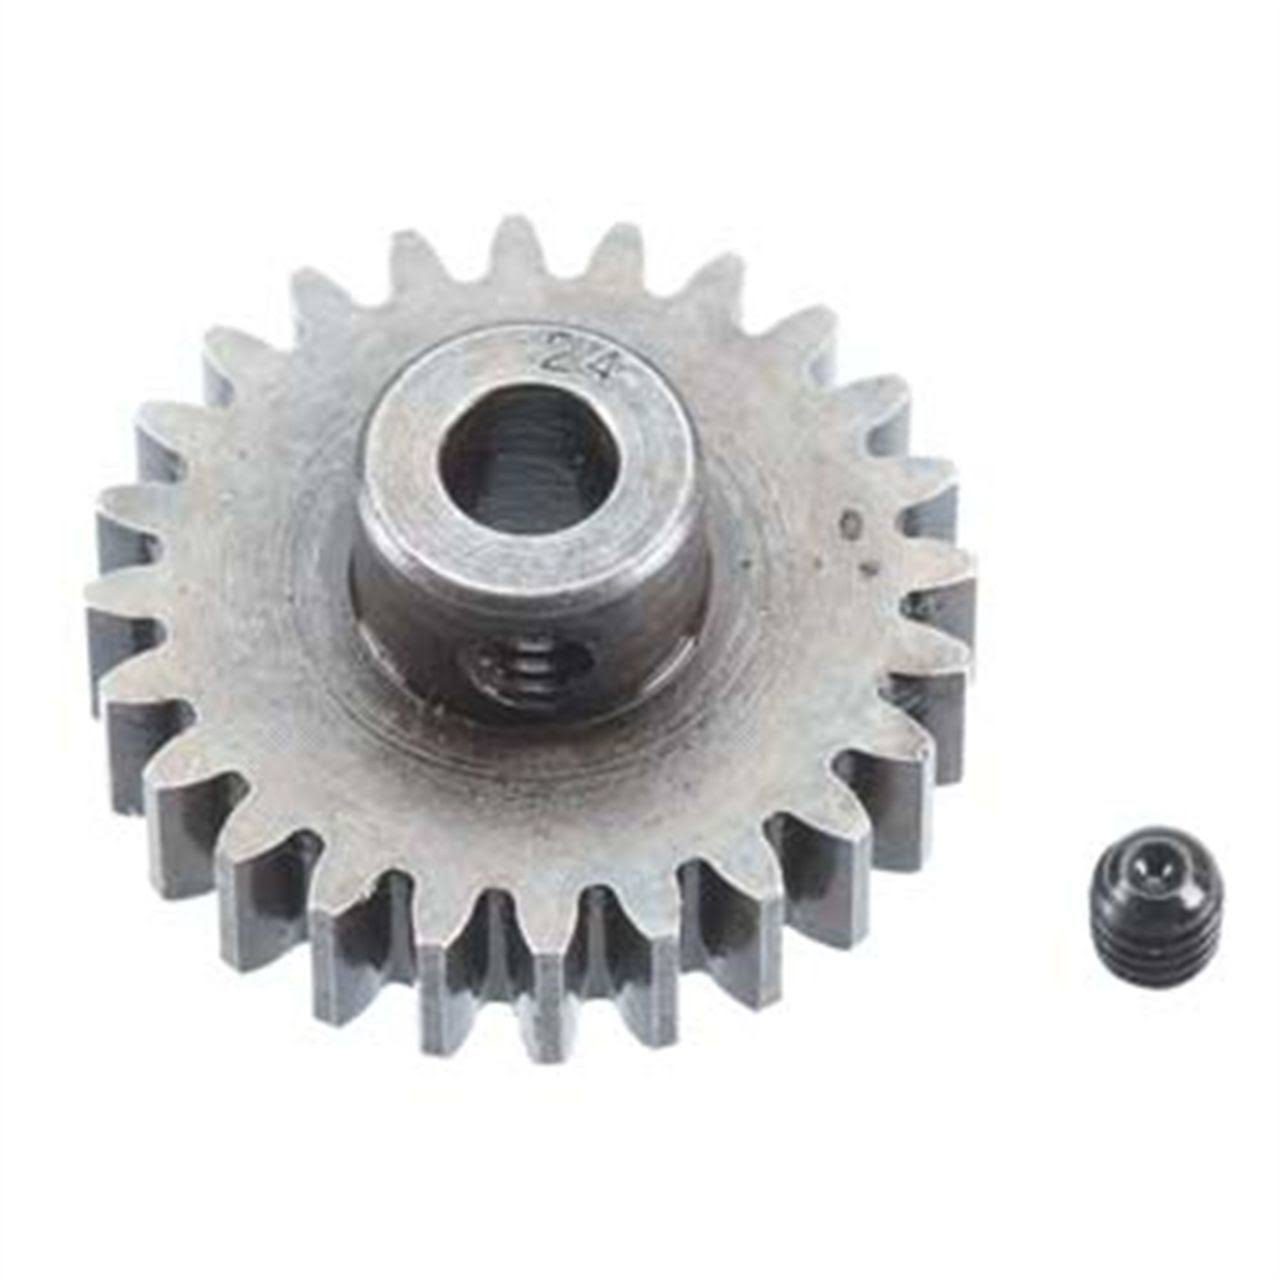 Robinson Racing Pinion Gear - Xtra Hard. 5mm, 24T